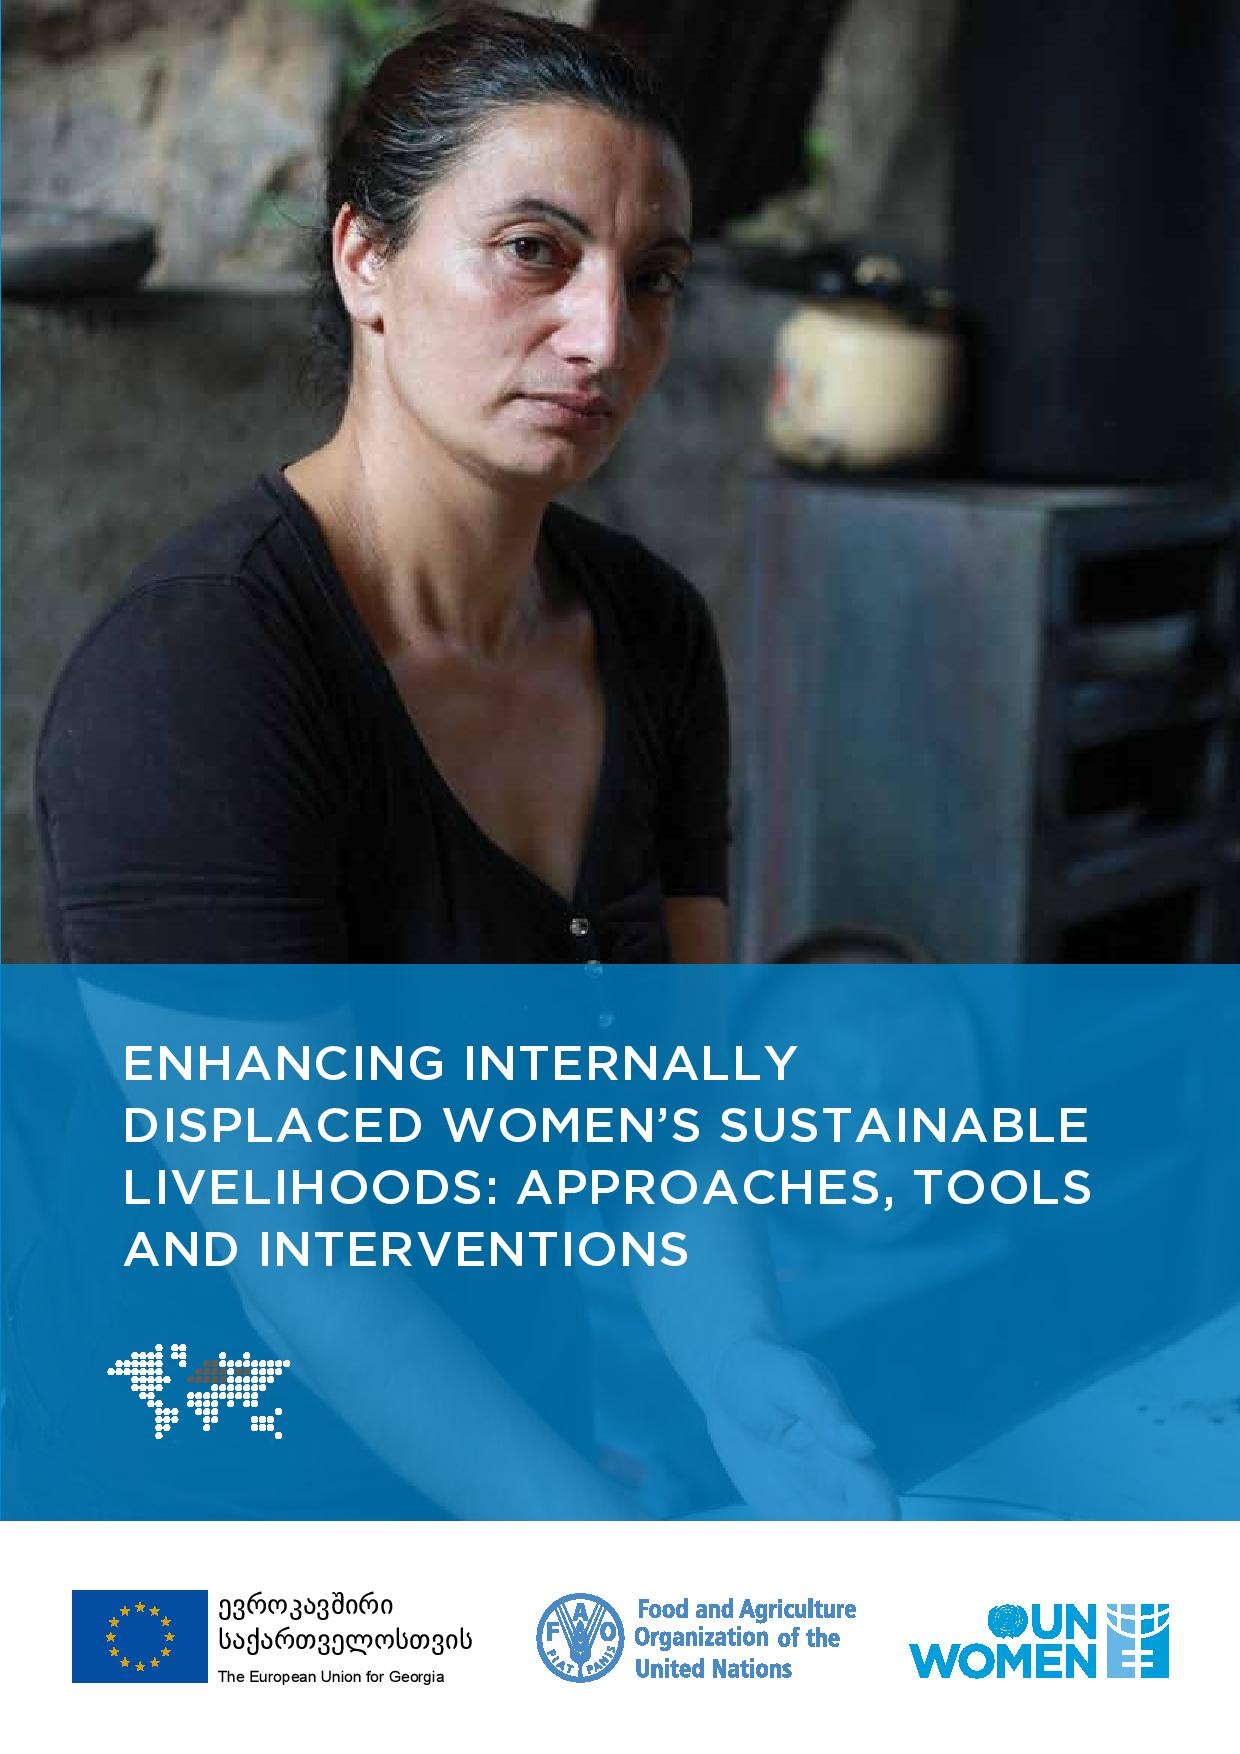 Enhancing  internally displaced women's sustainable livelihoods: Approaches, tools and interventions